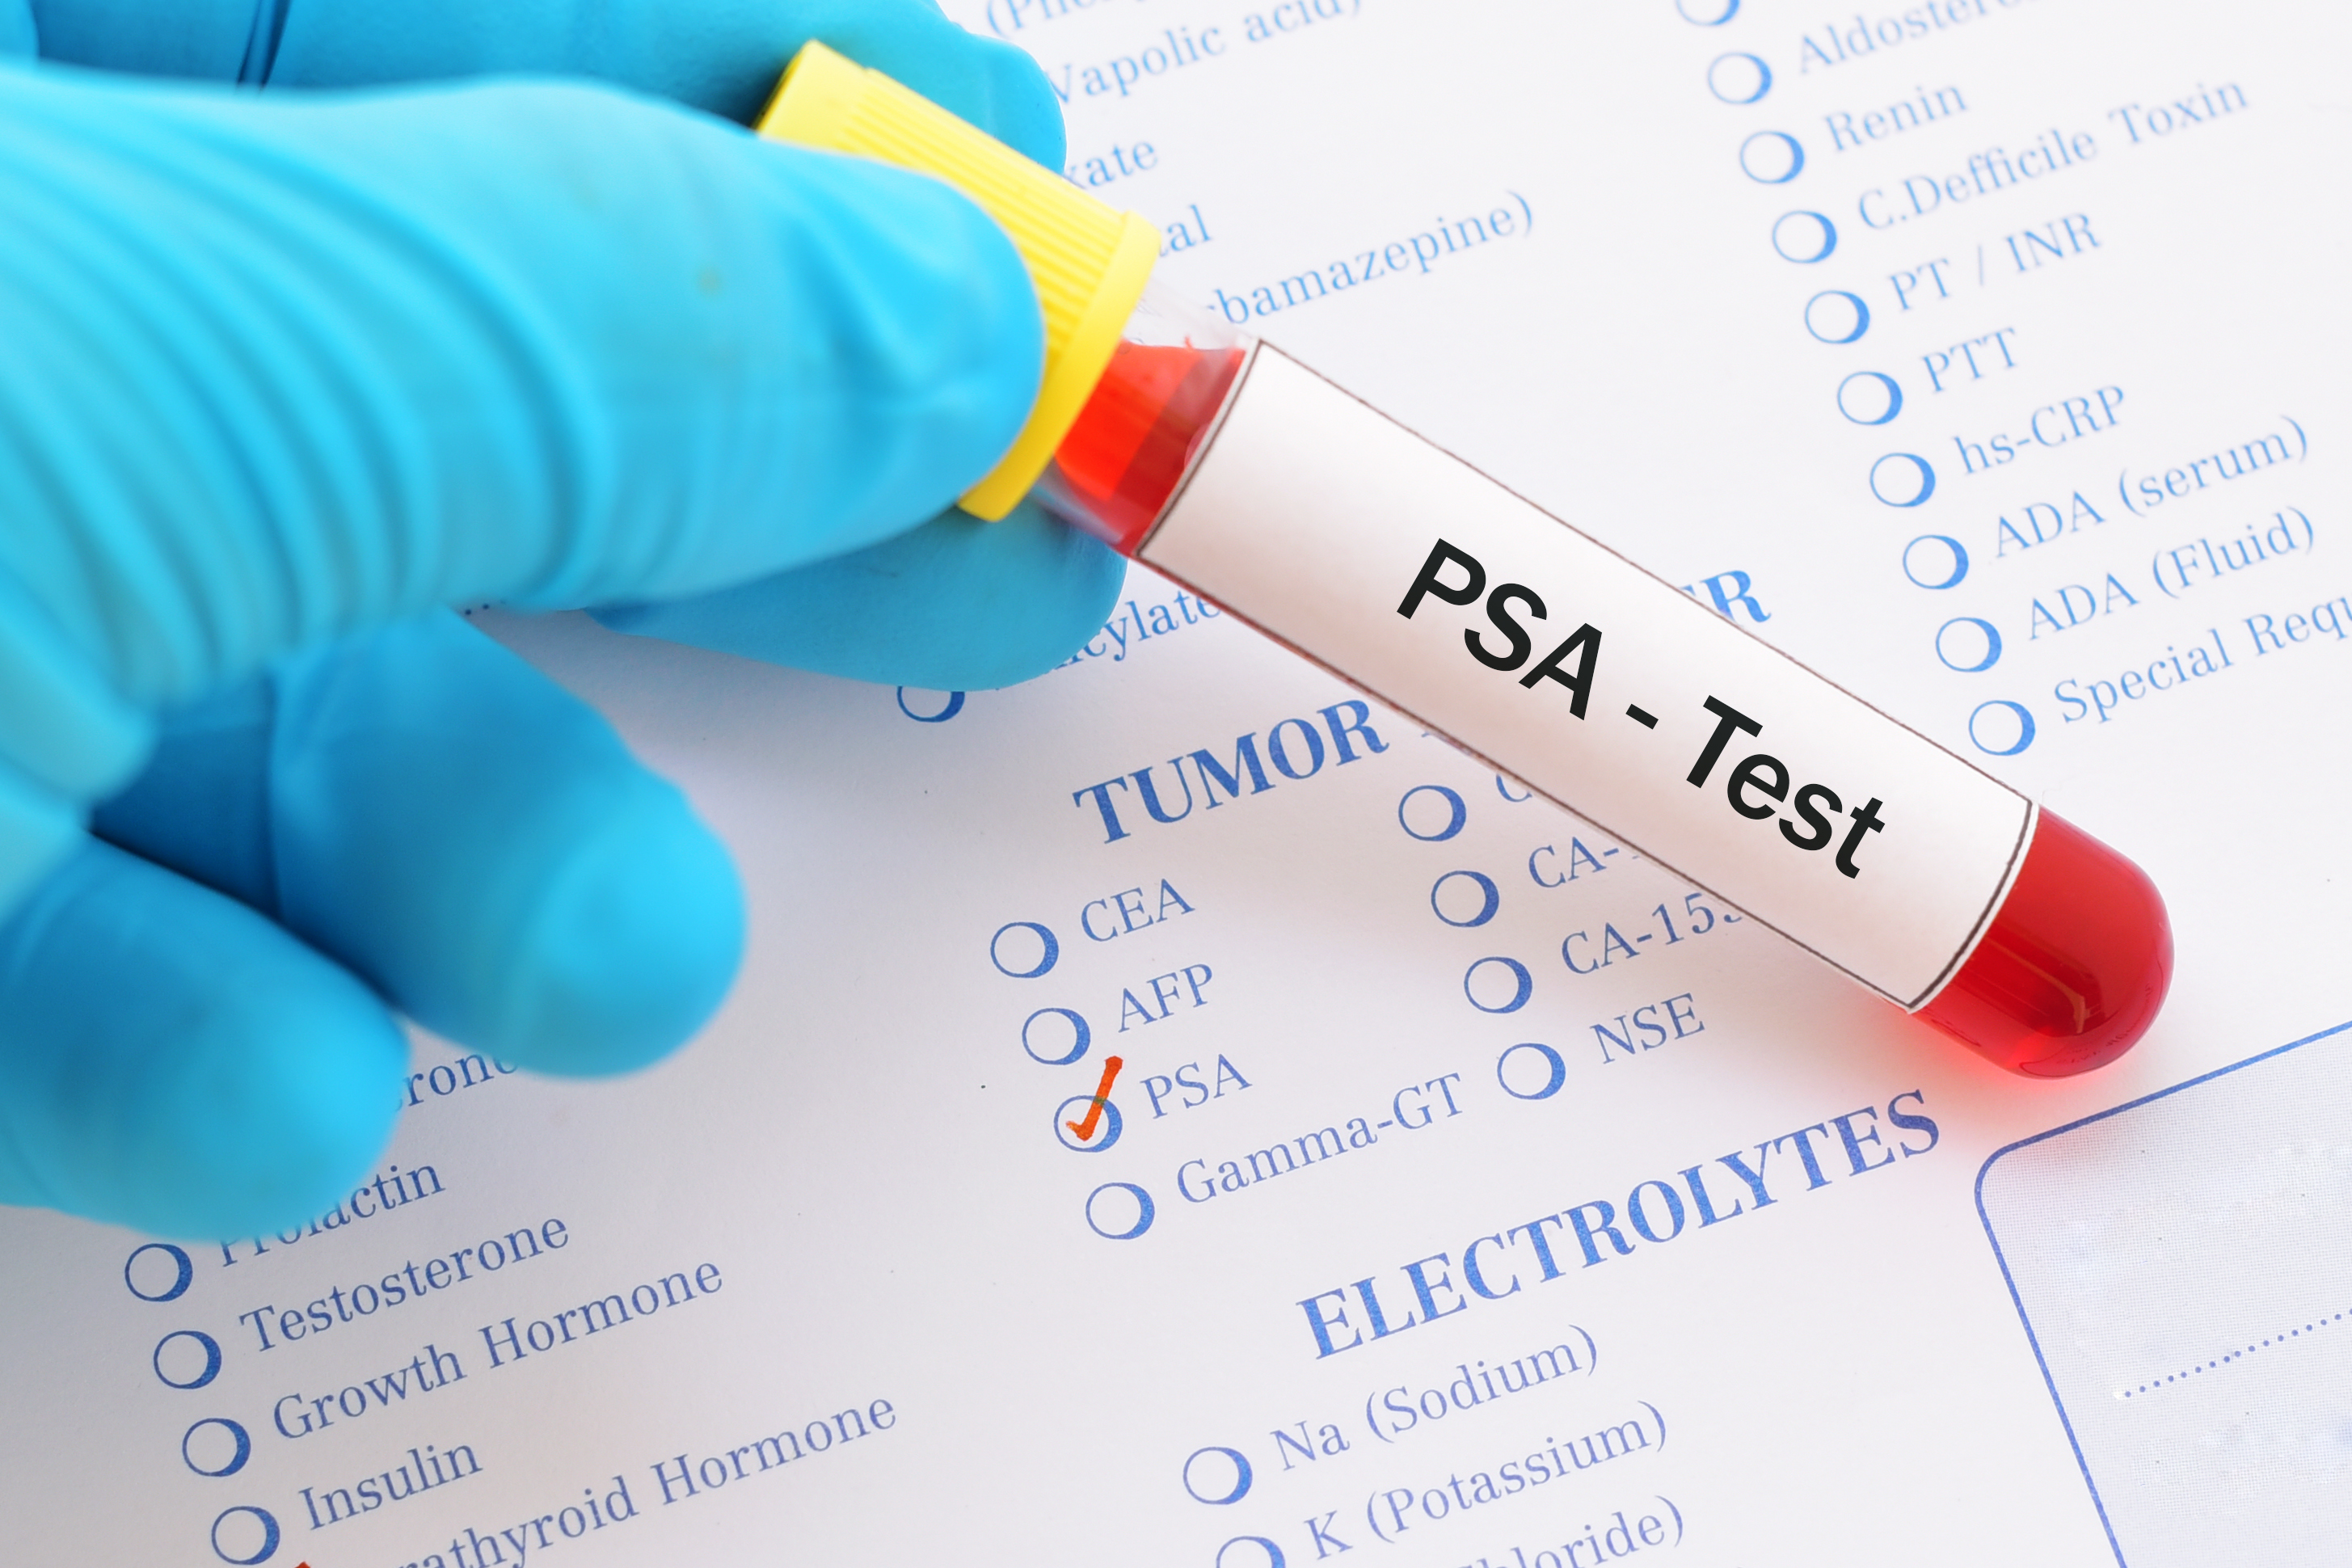 Stanford Professor dubs PSA test - almost useless